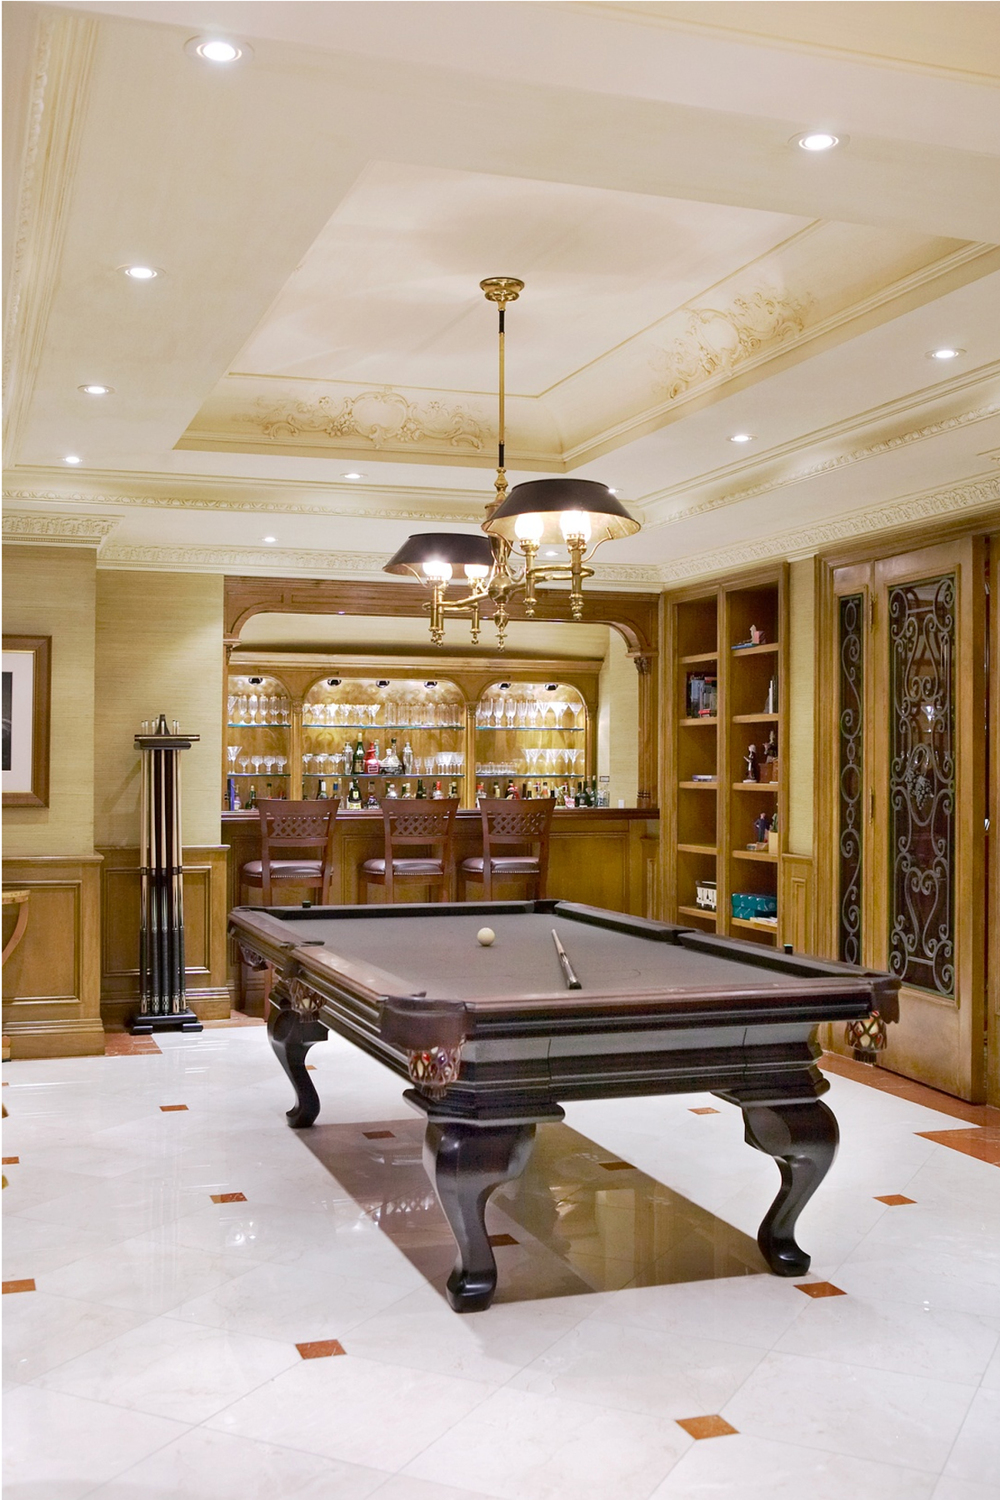 06-poolroom table.jpg